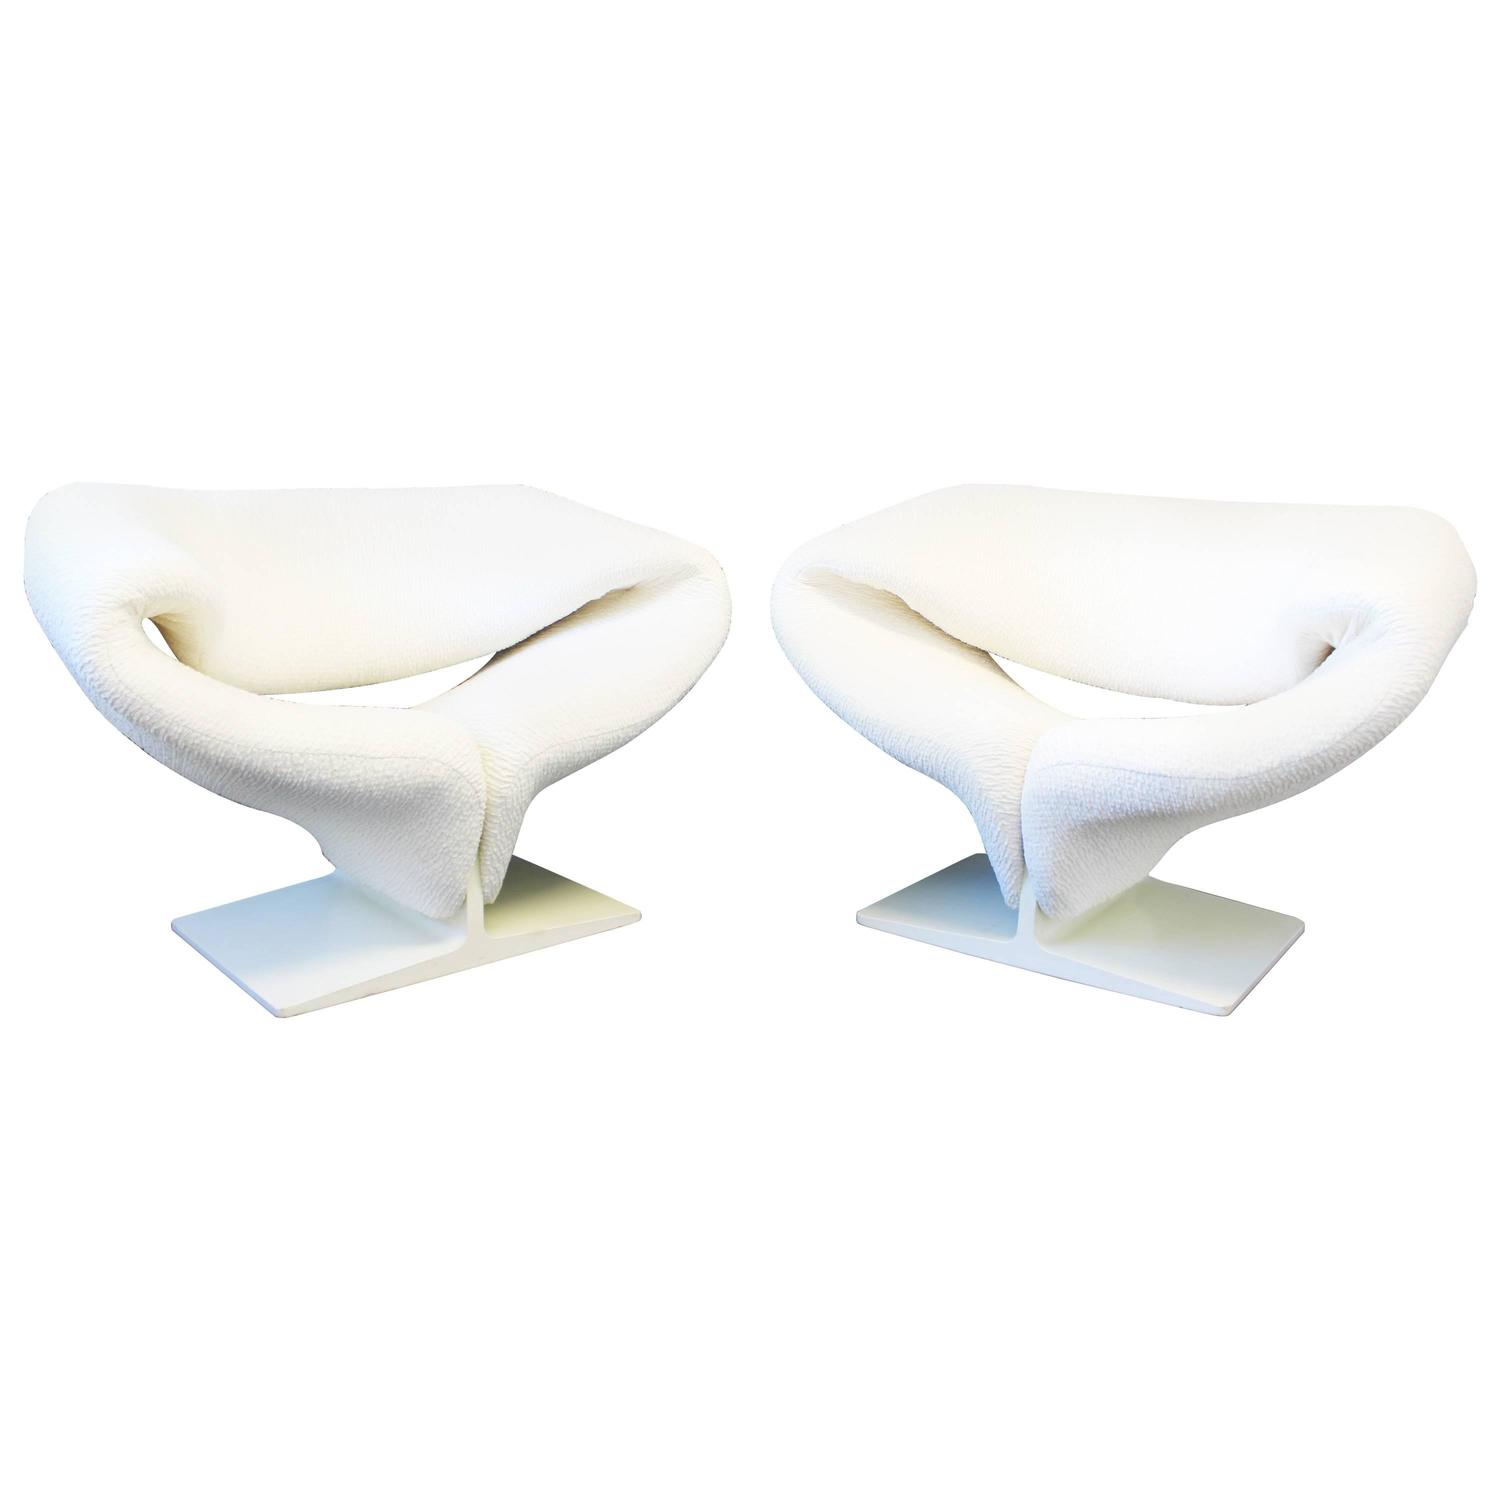 Pierre Paulin Ribbon Chairs In Missoni Fabric At 1stdibs: Signed Pair Of Pierre Paulin Ribbon Chairs By Artifort